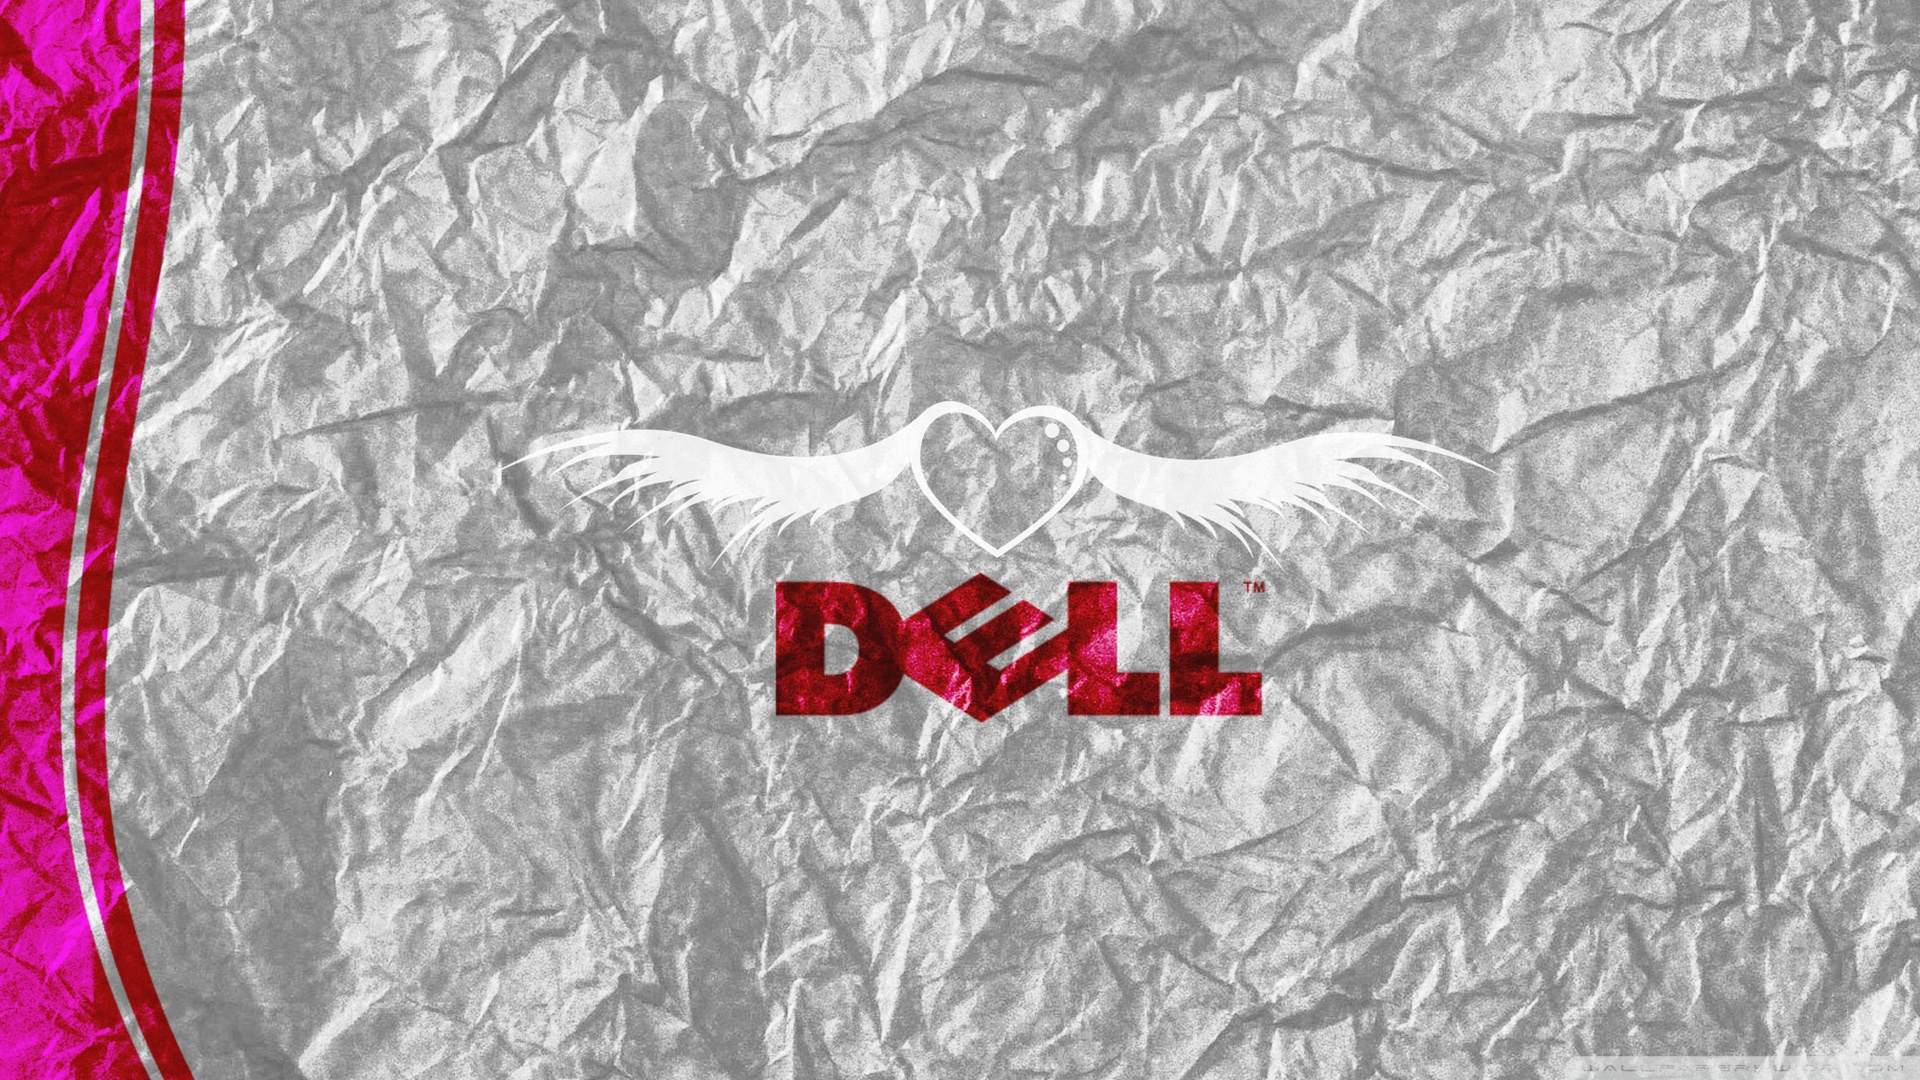 Hd Wallpaper For Dell Laptop Hd Wallpapers backgrounds Download 1920x1080